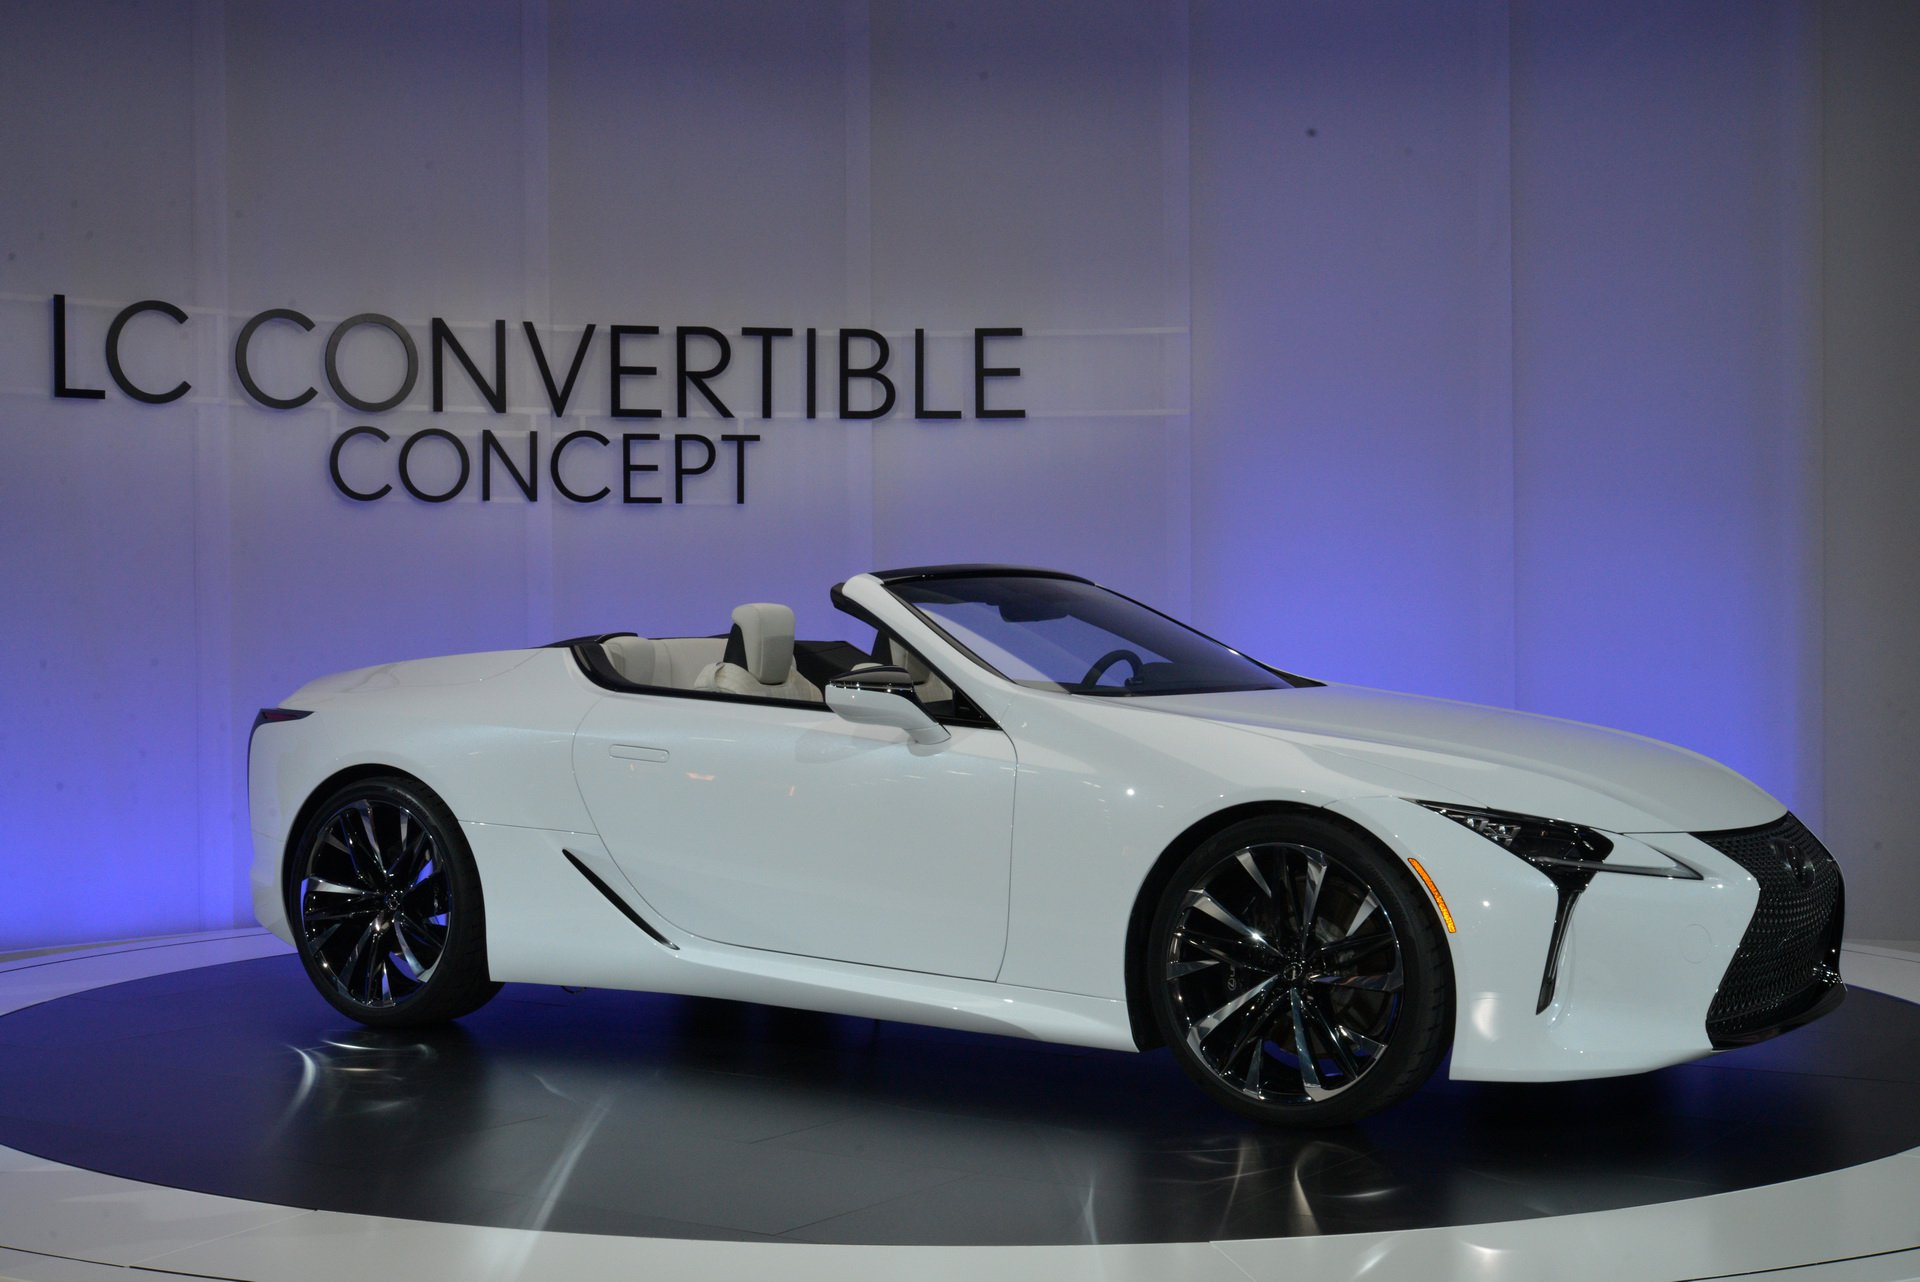 lexus-lc-convertible-–-doi-thu-cua-bmw-8-series-convertible-trinh-lang